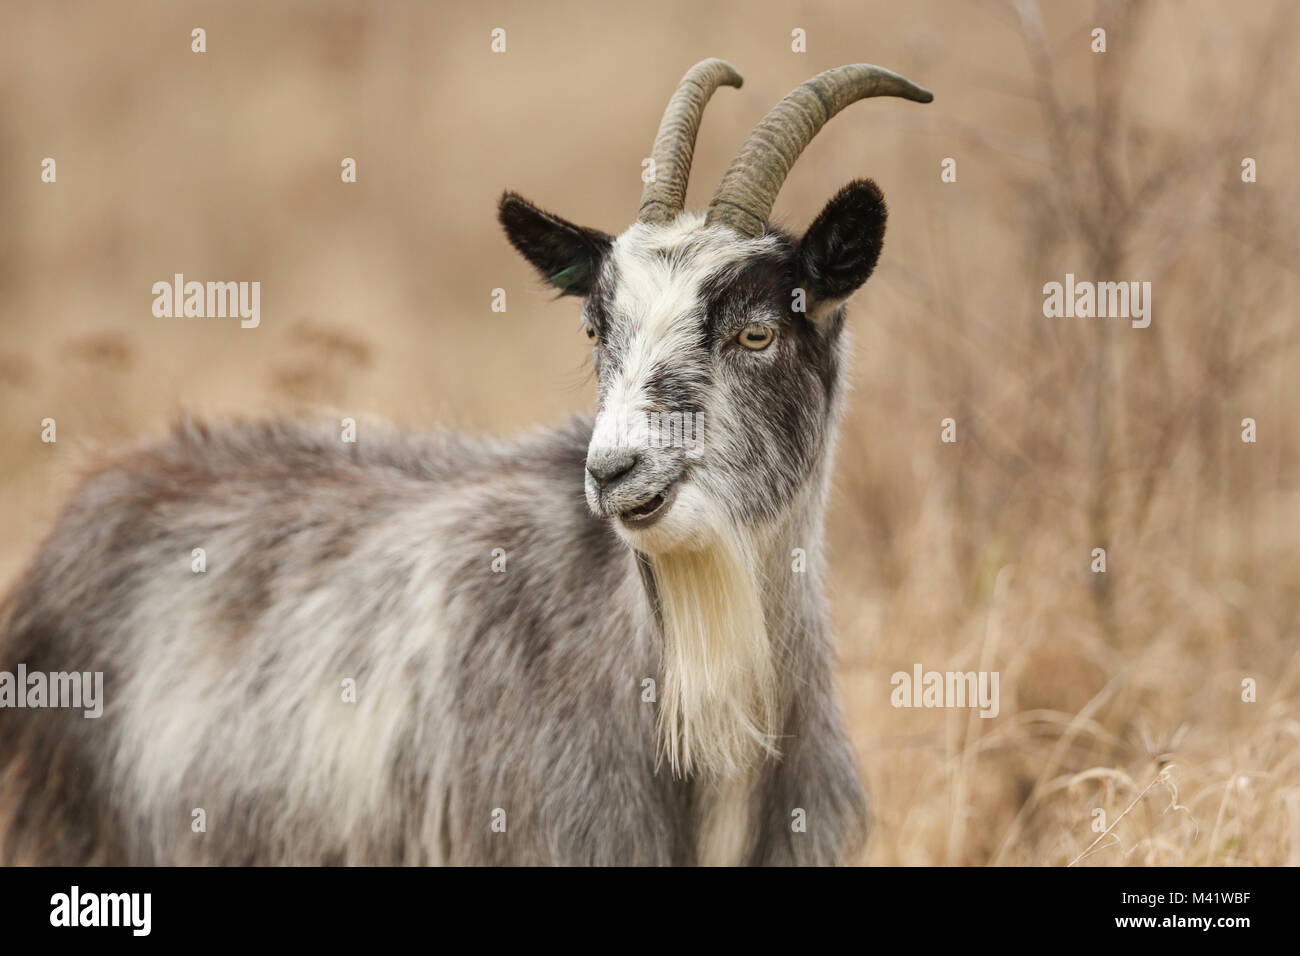 A head and shoulder shot of Goat (Capra aegagrus hircus) grazing in rough pasture. Stock Photo